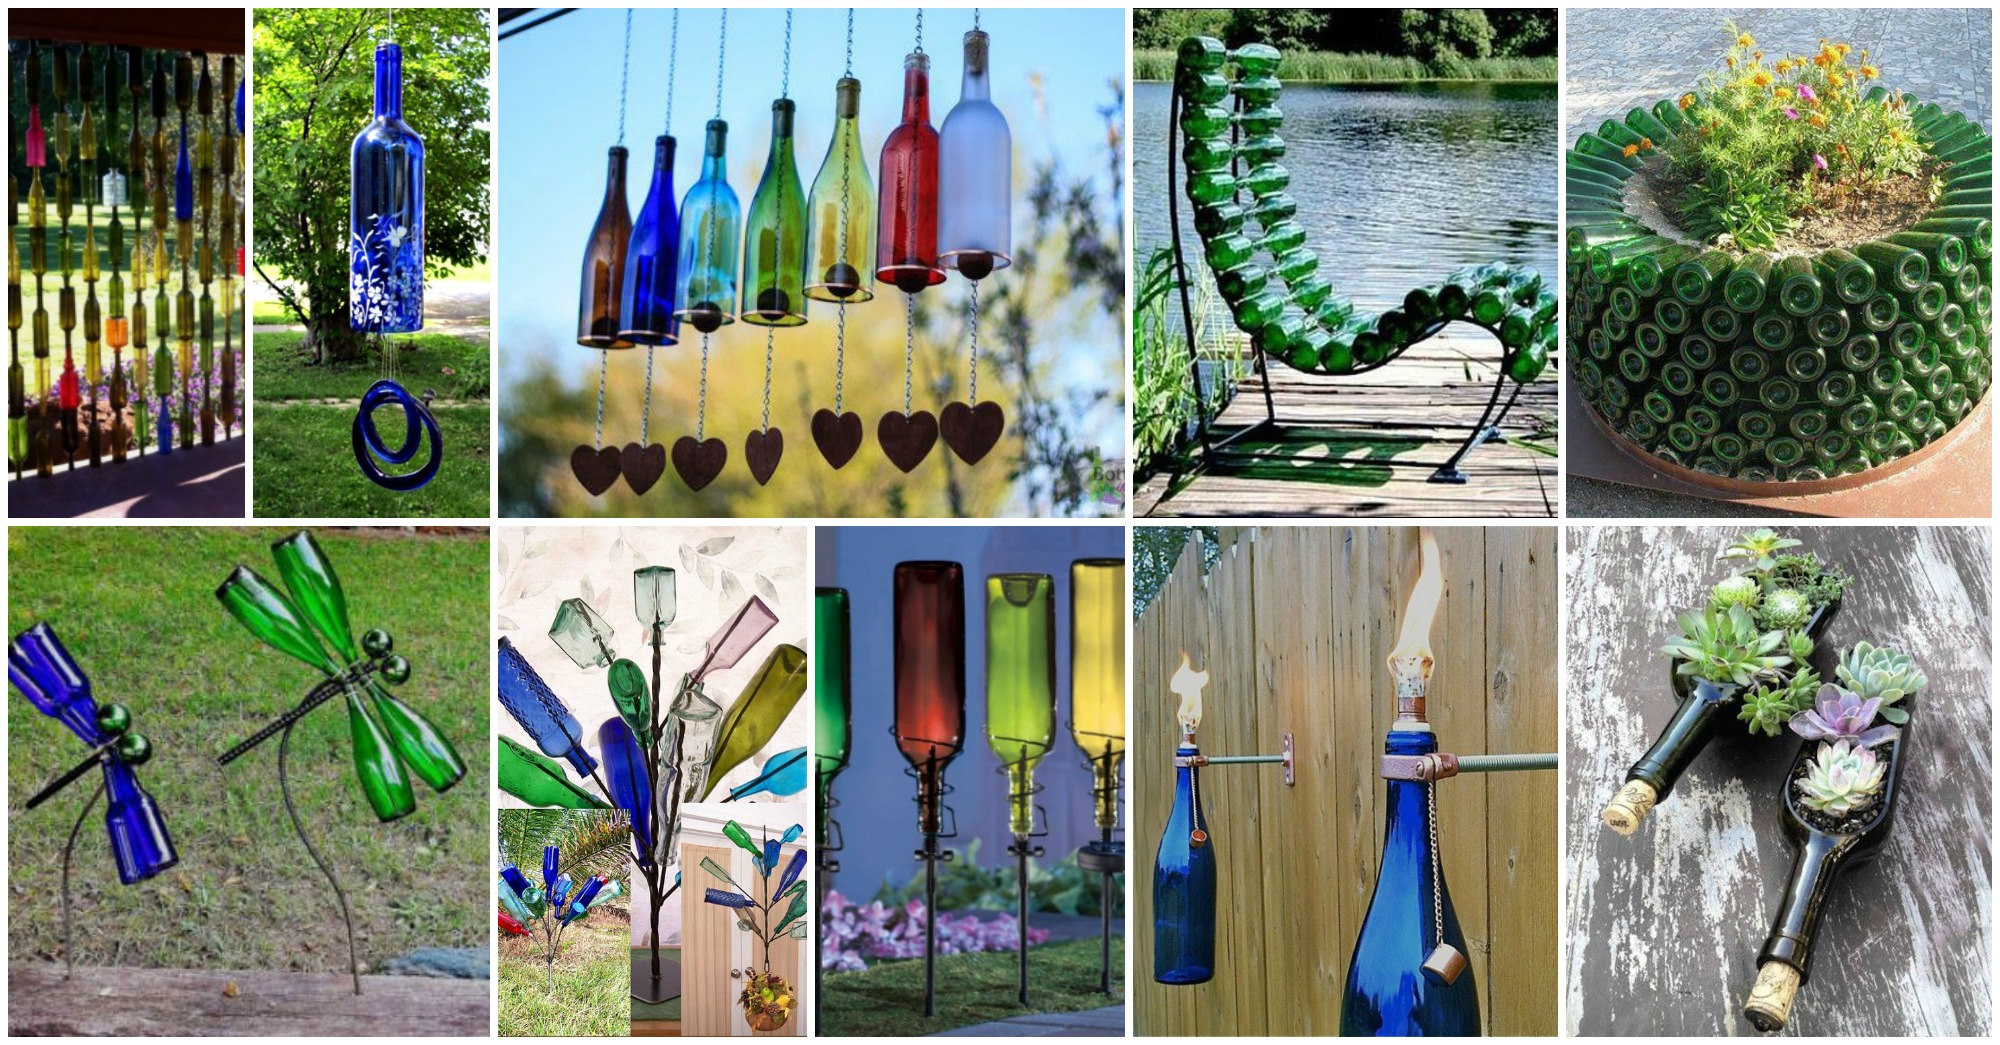 12 diy glass bottles garden decor for Diy home design ideas landscape backyard